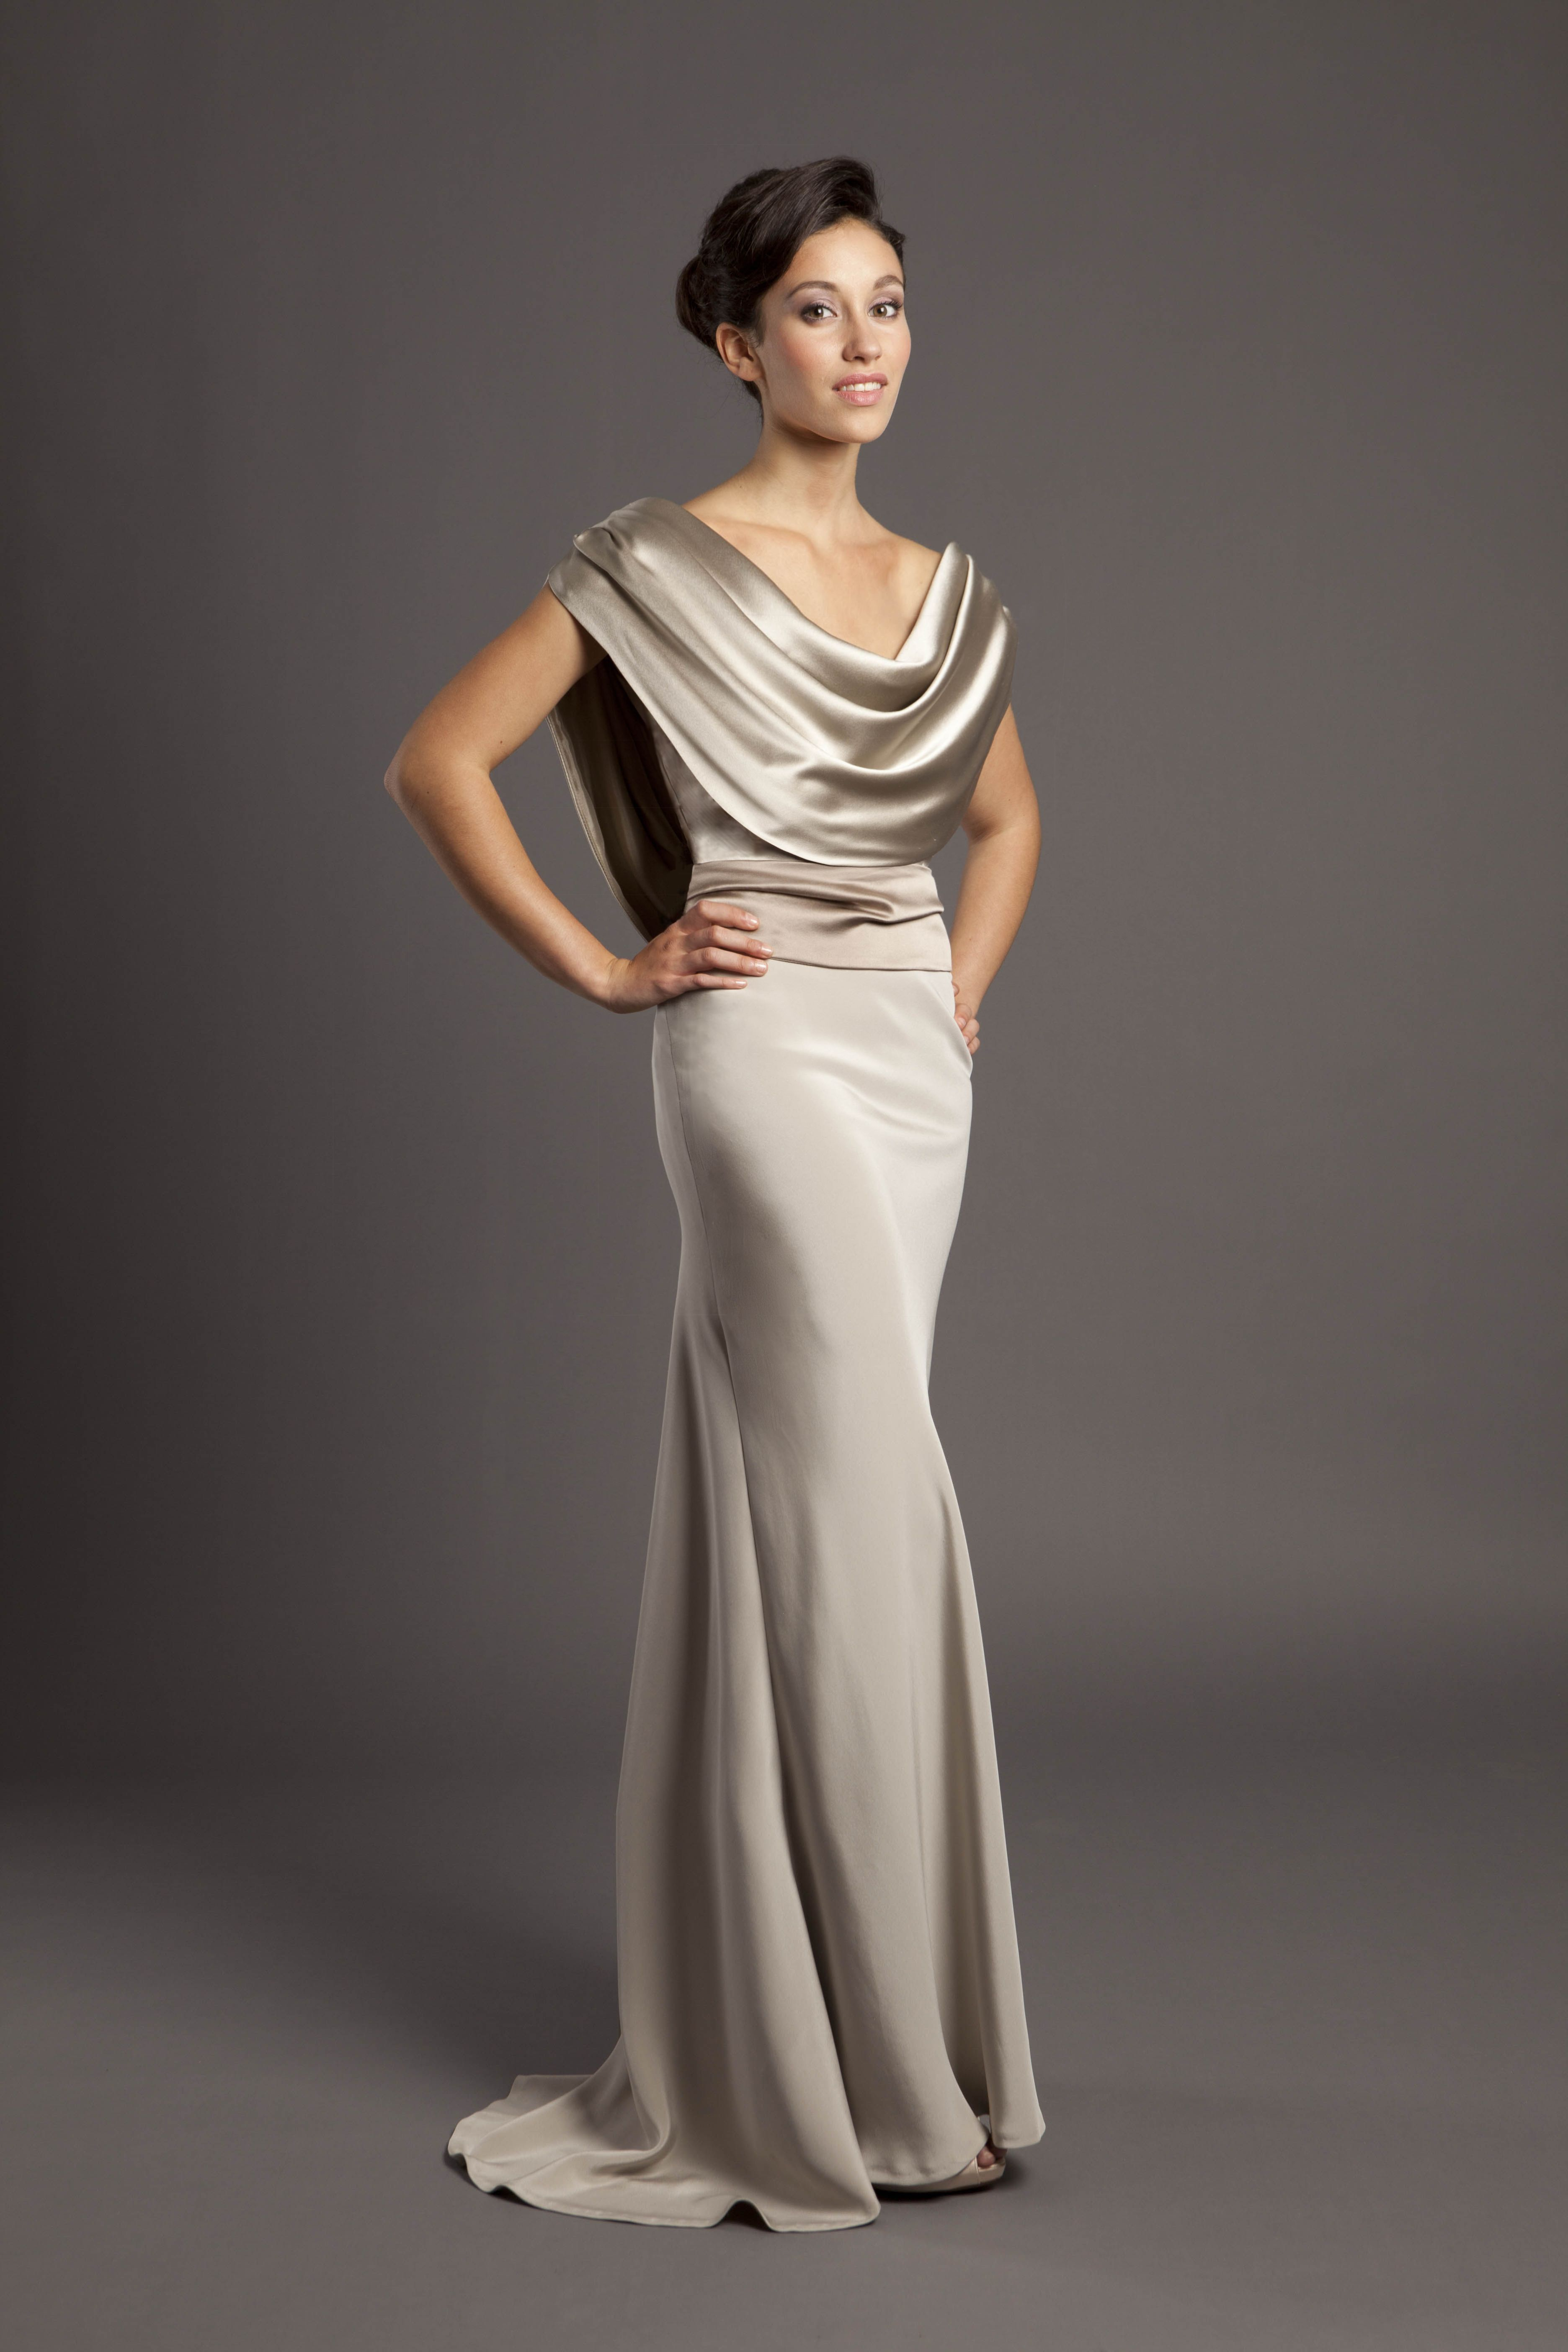 Draped Floor Length Silk Dresses with Sleeves